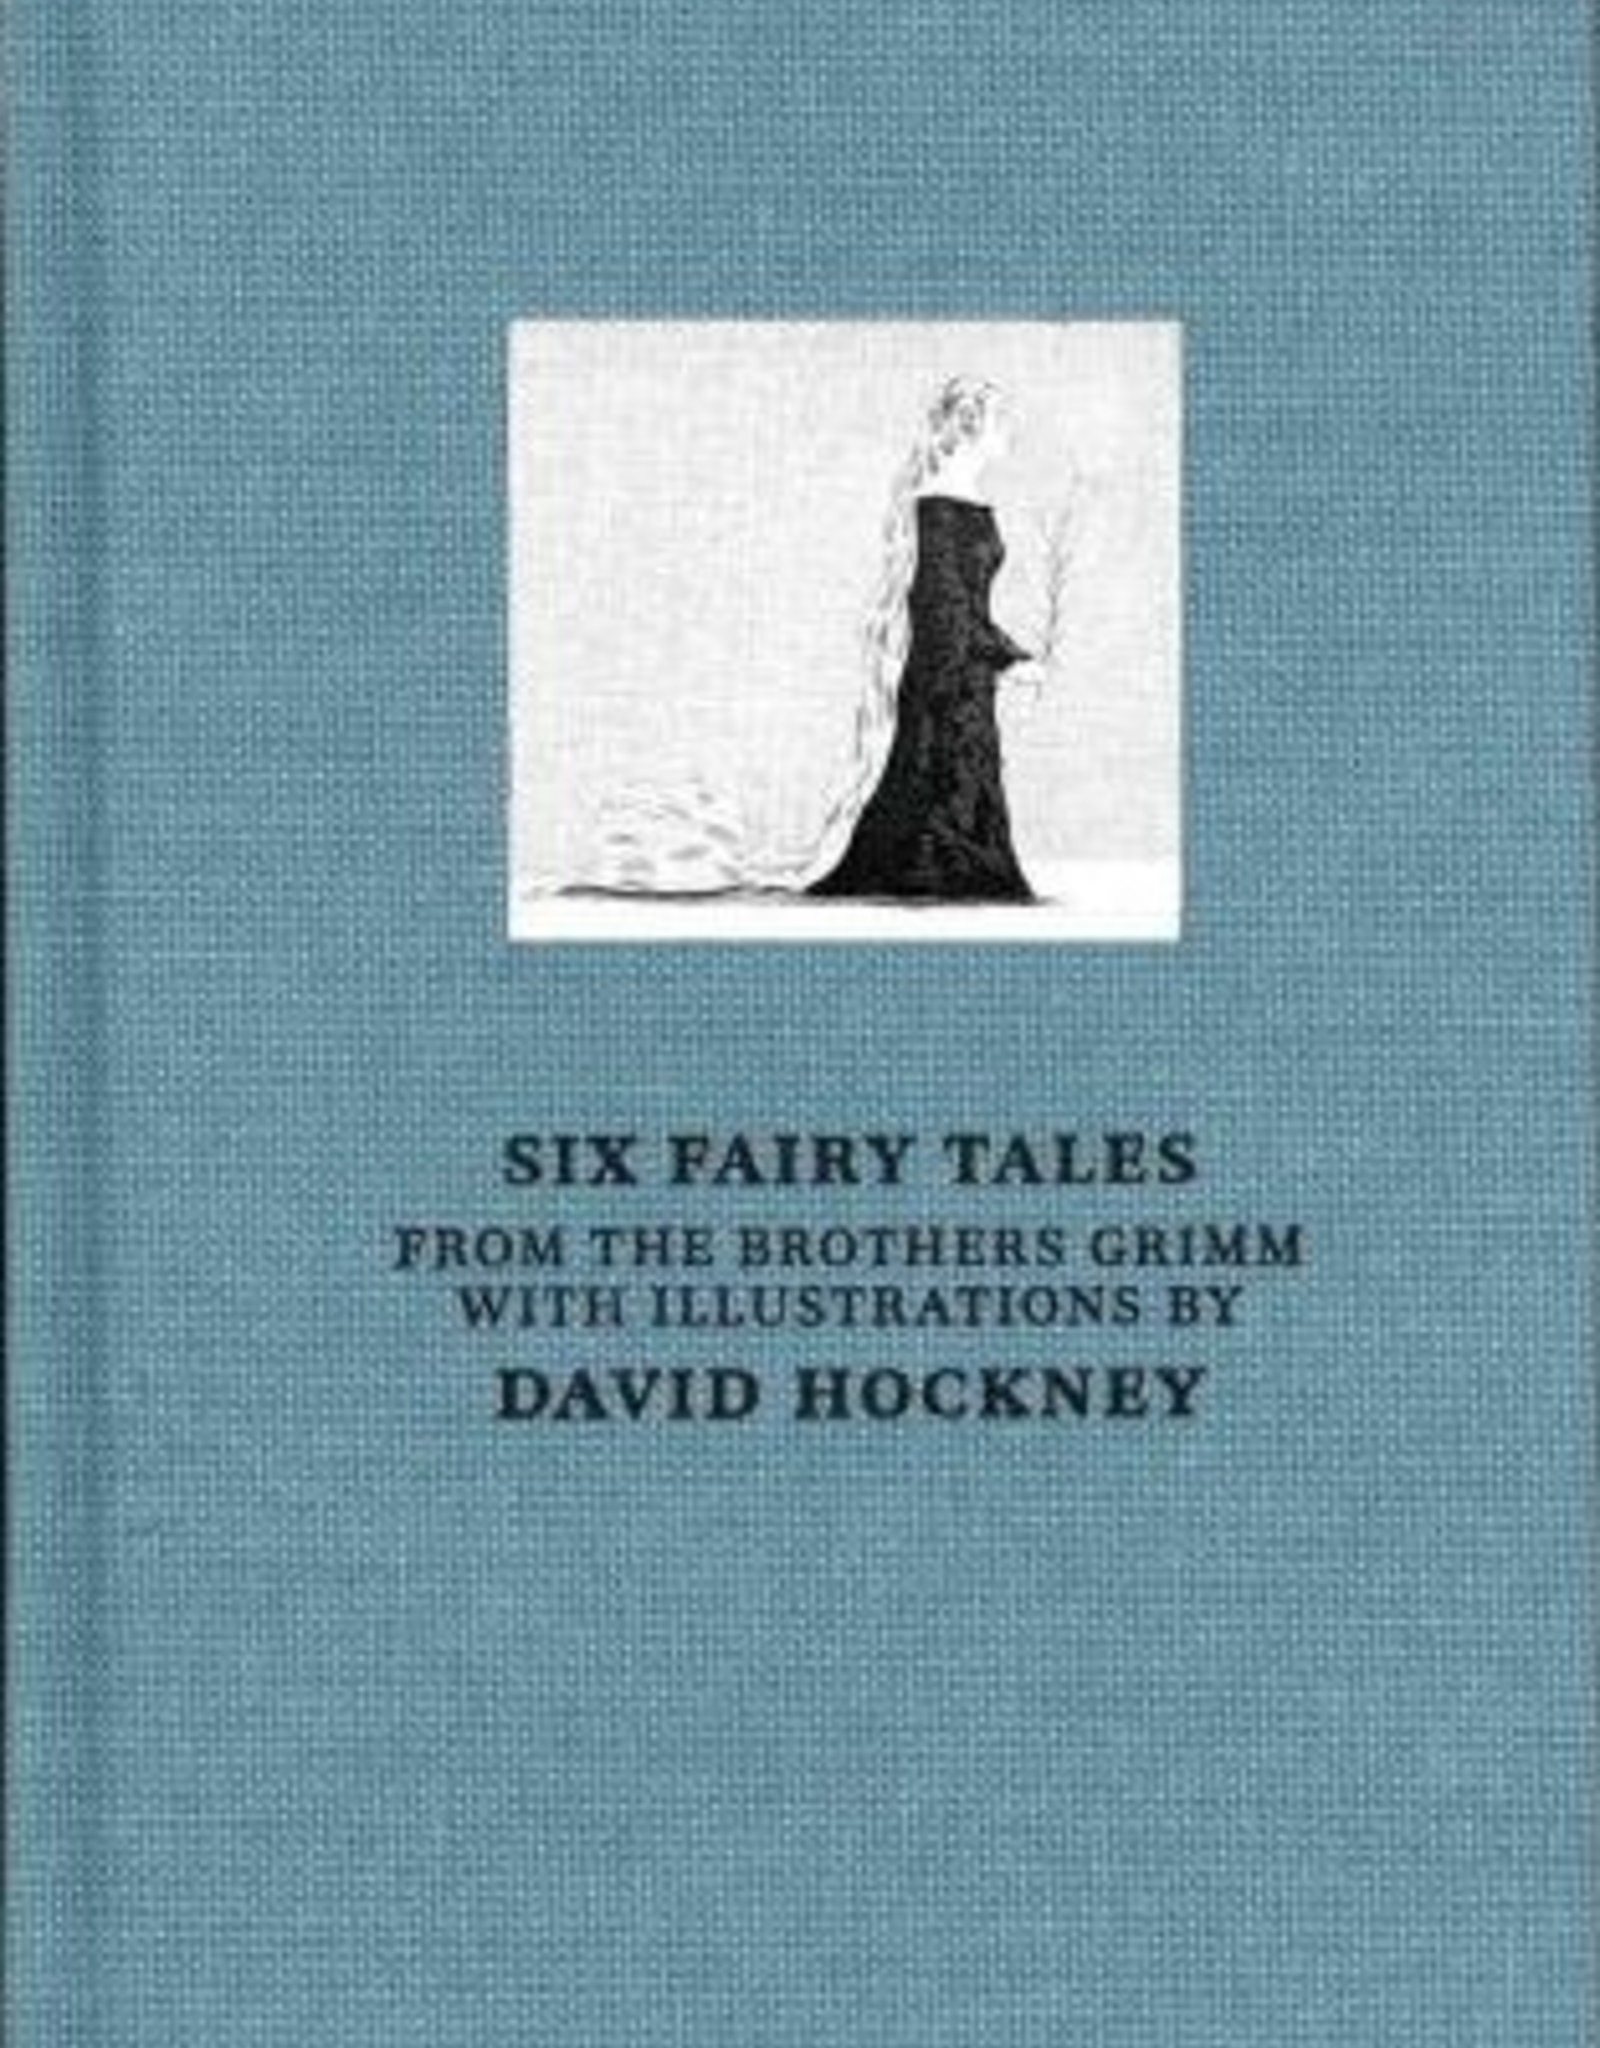 Argosy Six Fairy Tales From The Brothers Grimm David Hockney